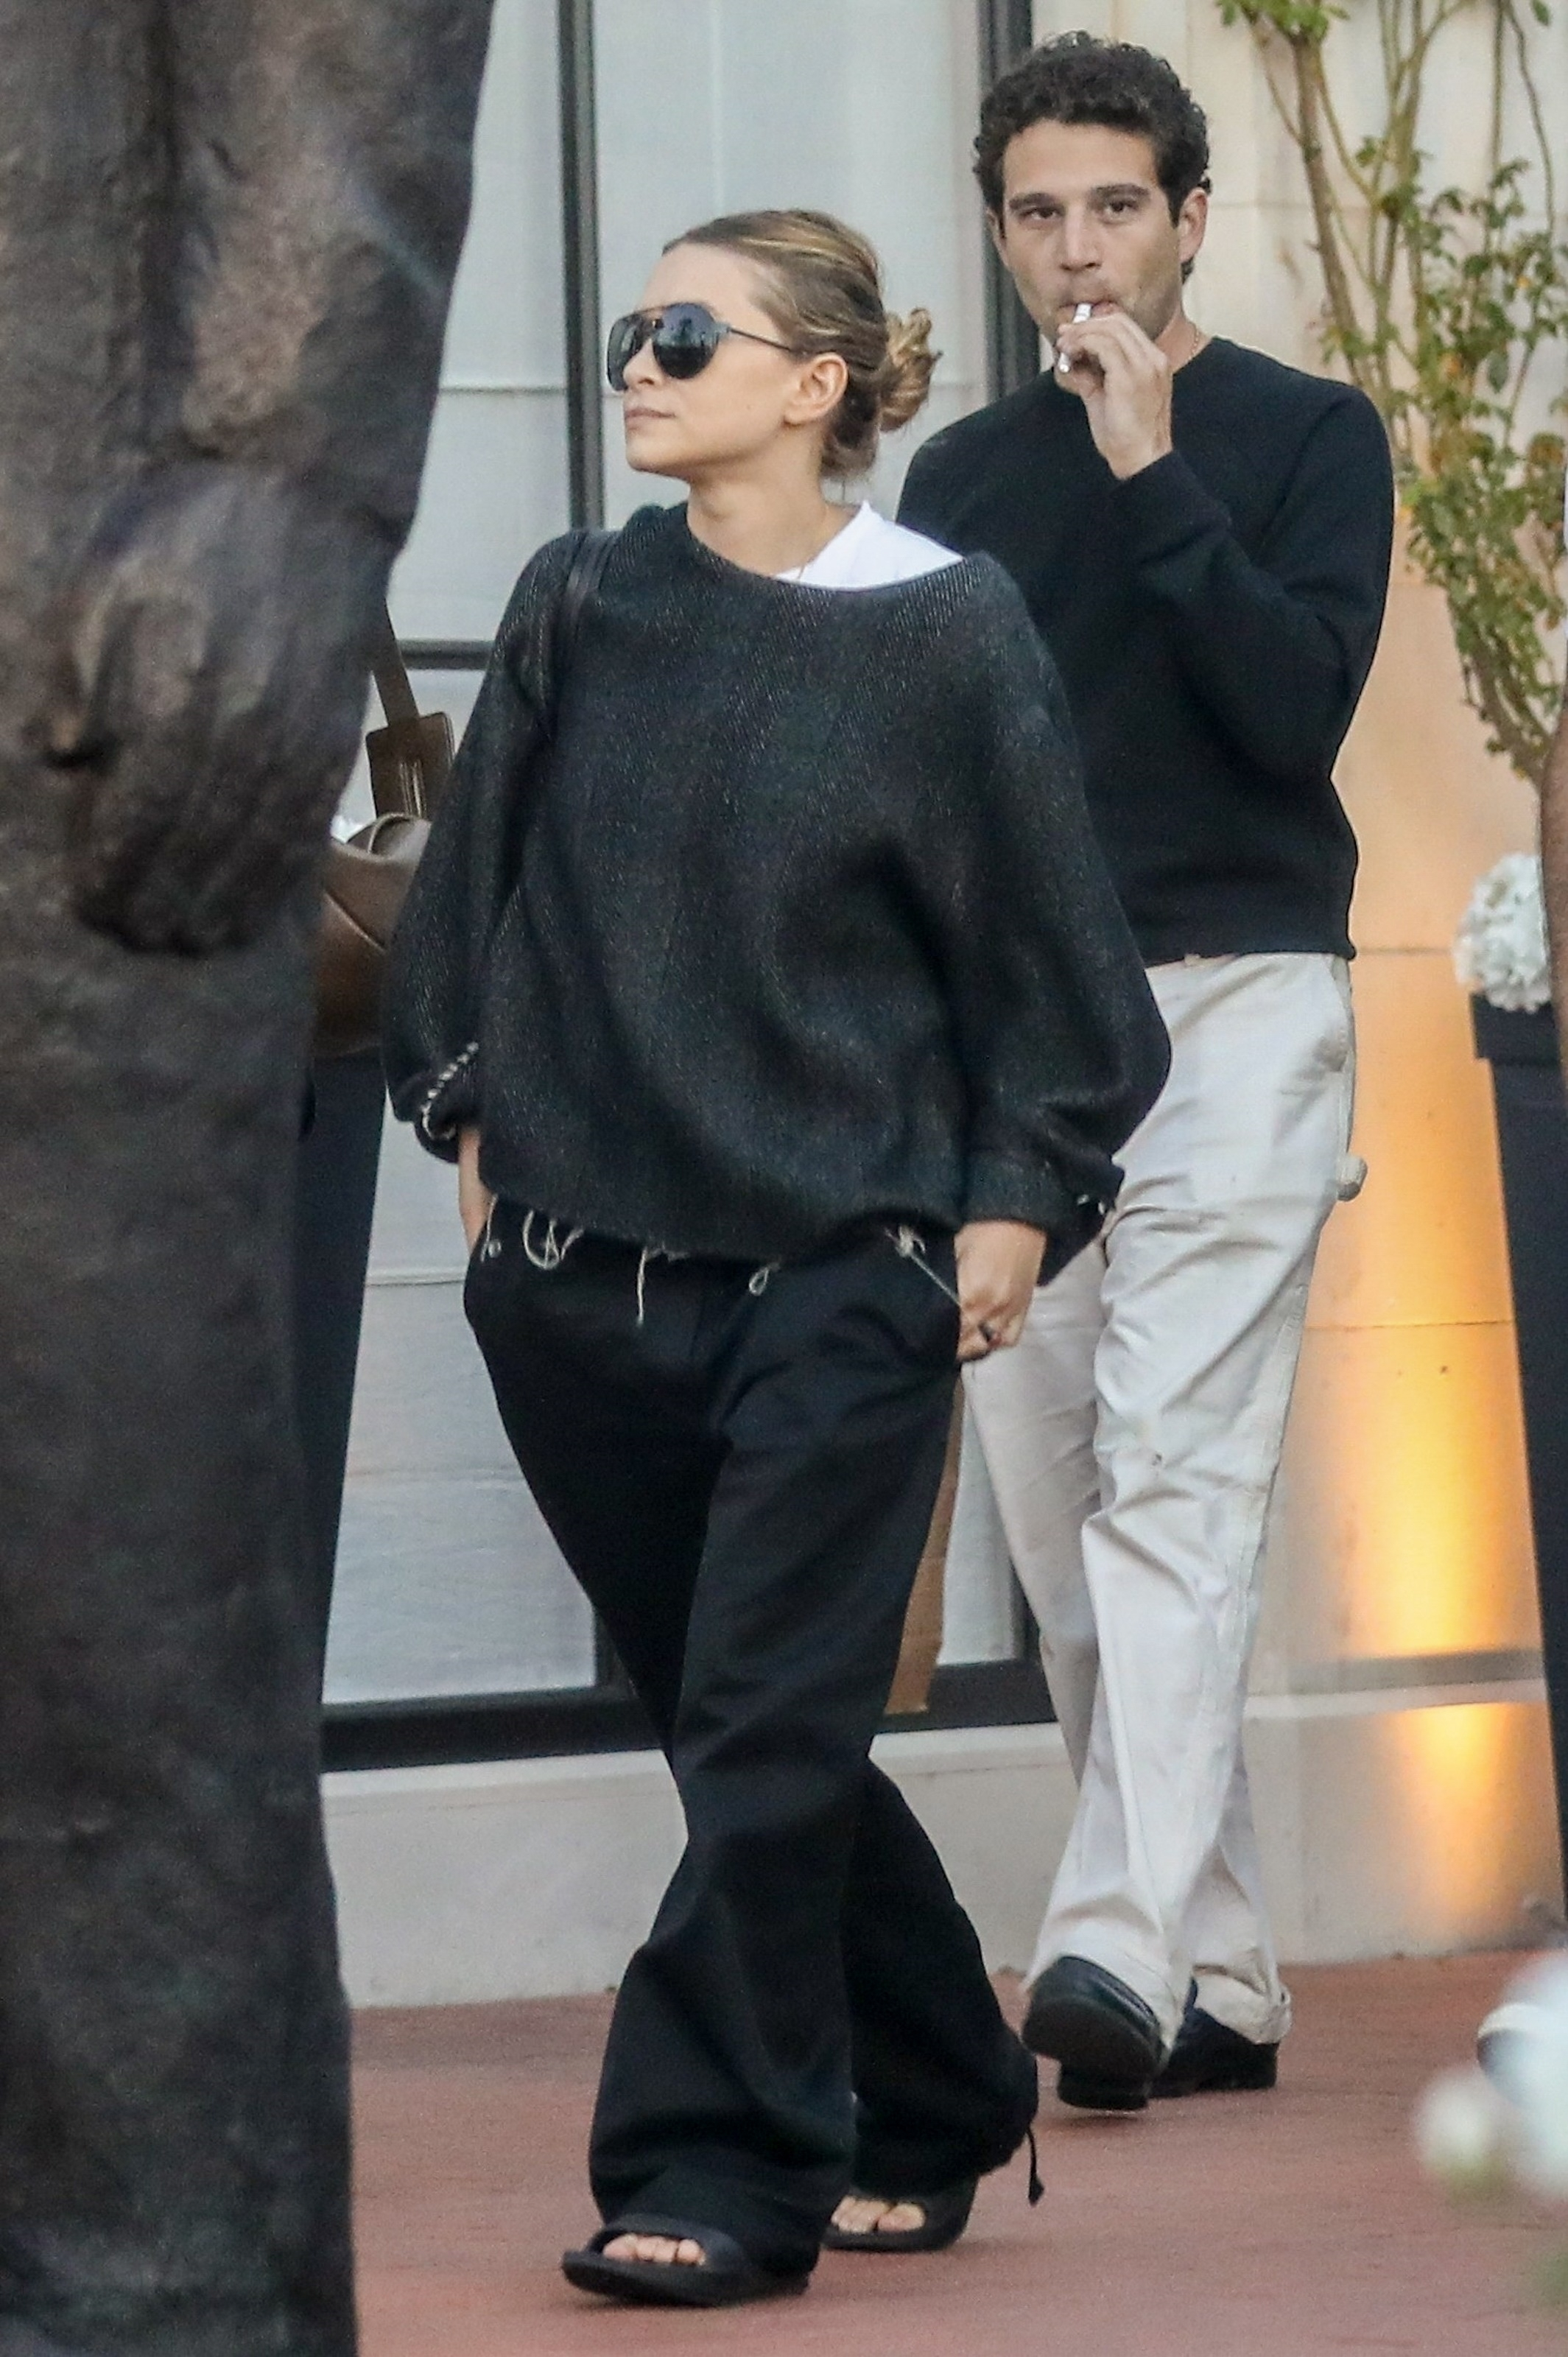 Ashley Olsen and her boyfriend, Louis Eisner, head to the movies in the Pacific Palisades in California on July 29, 2019.